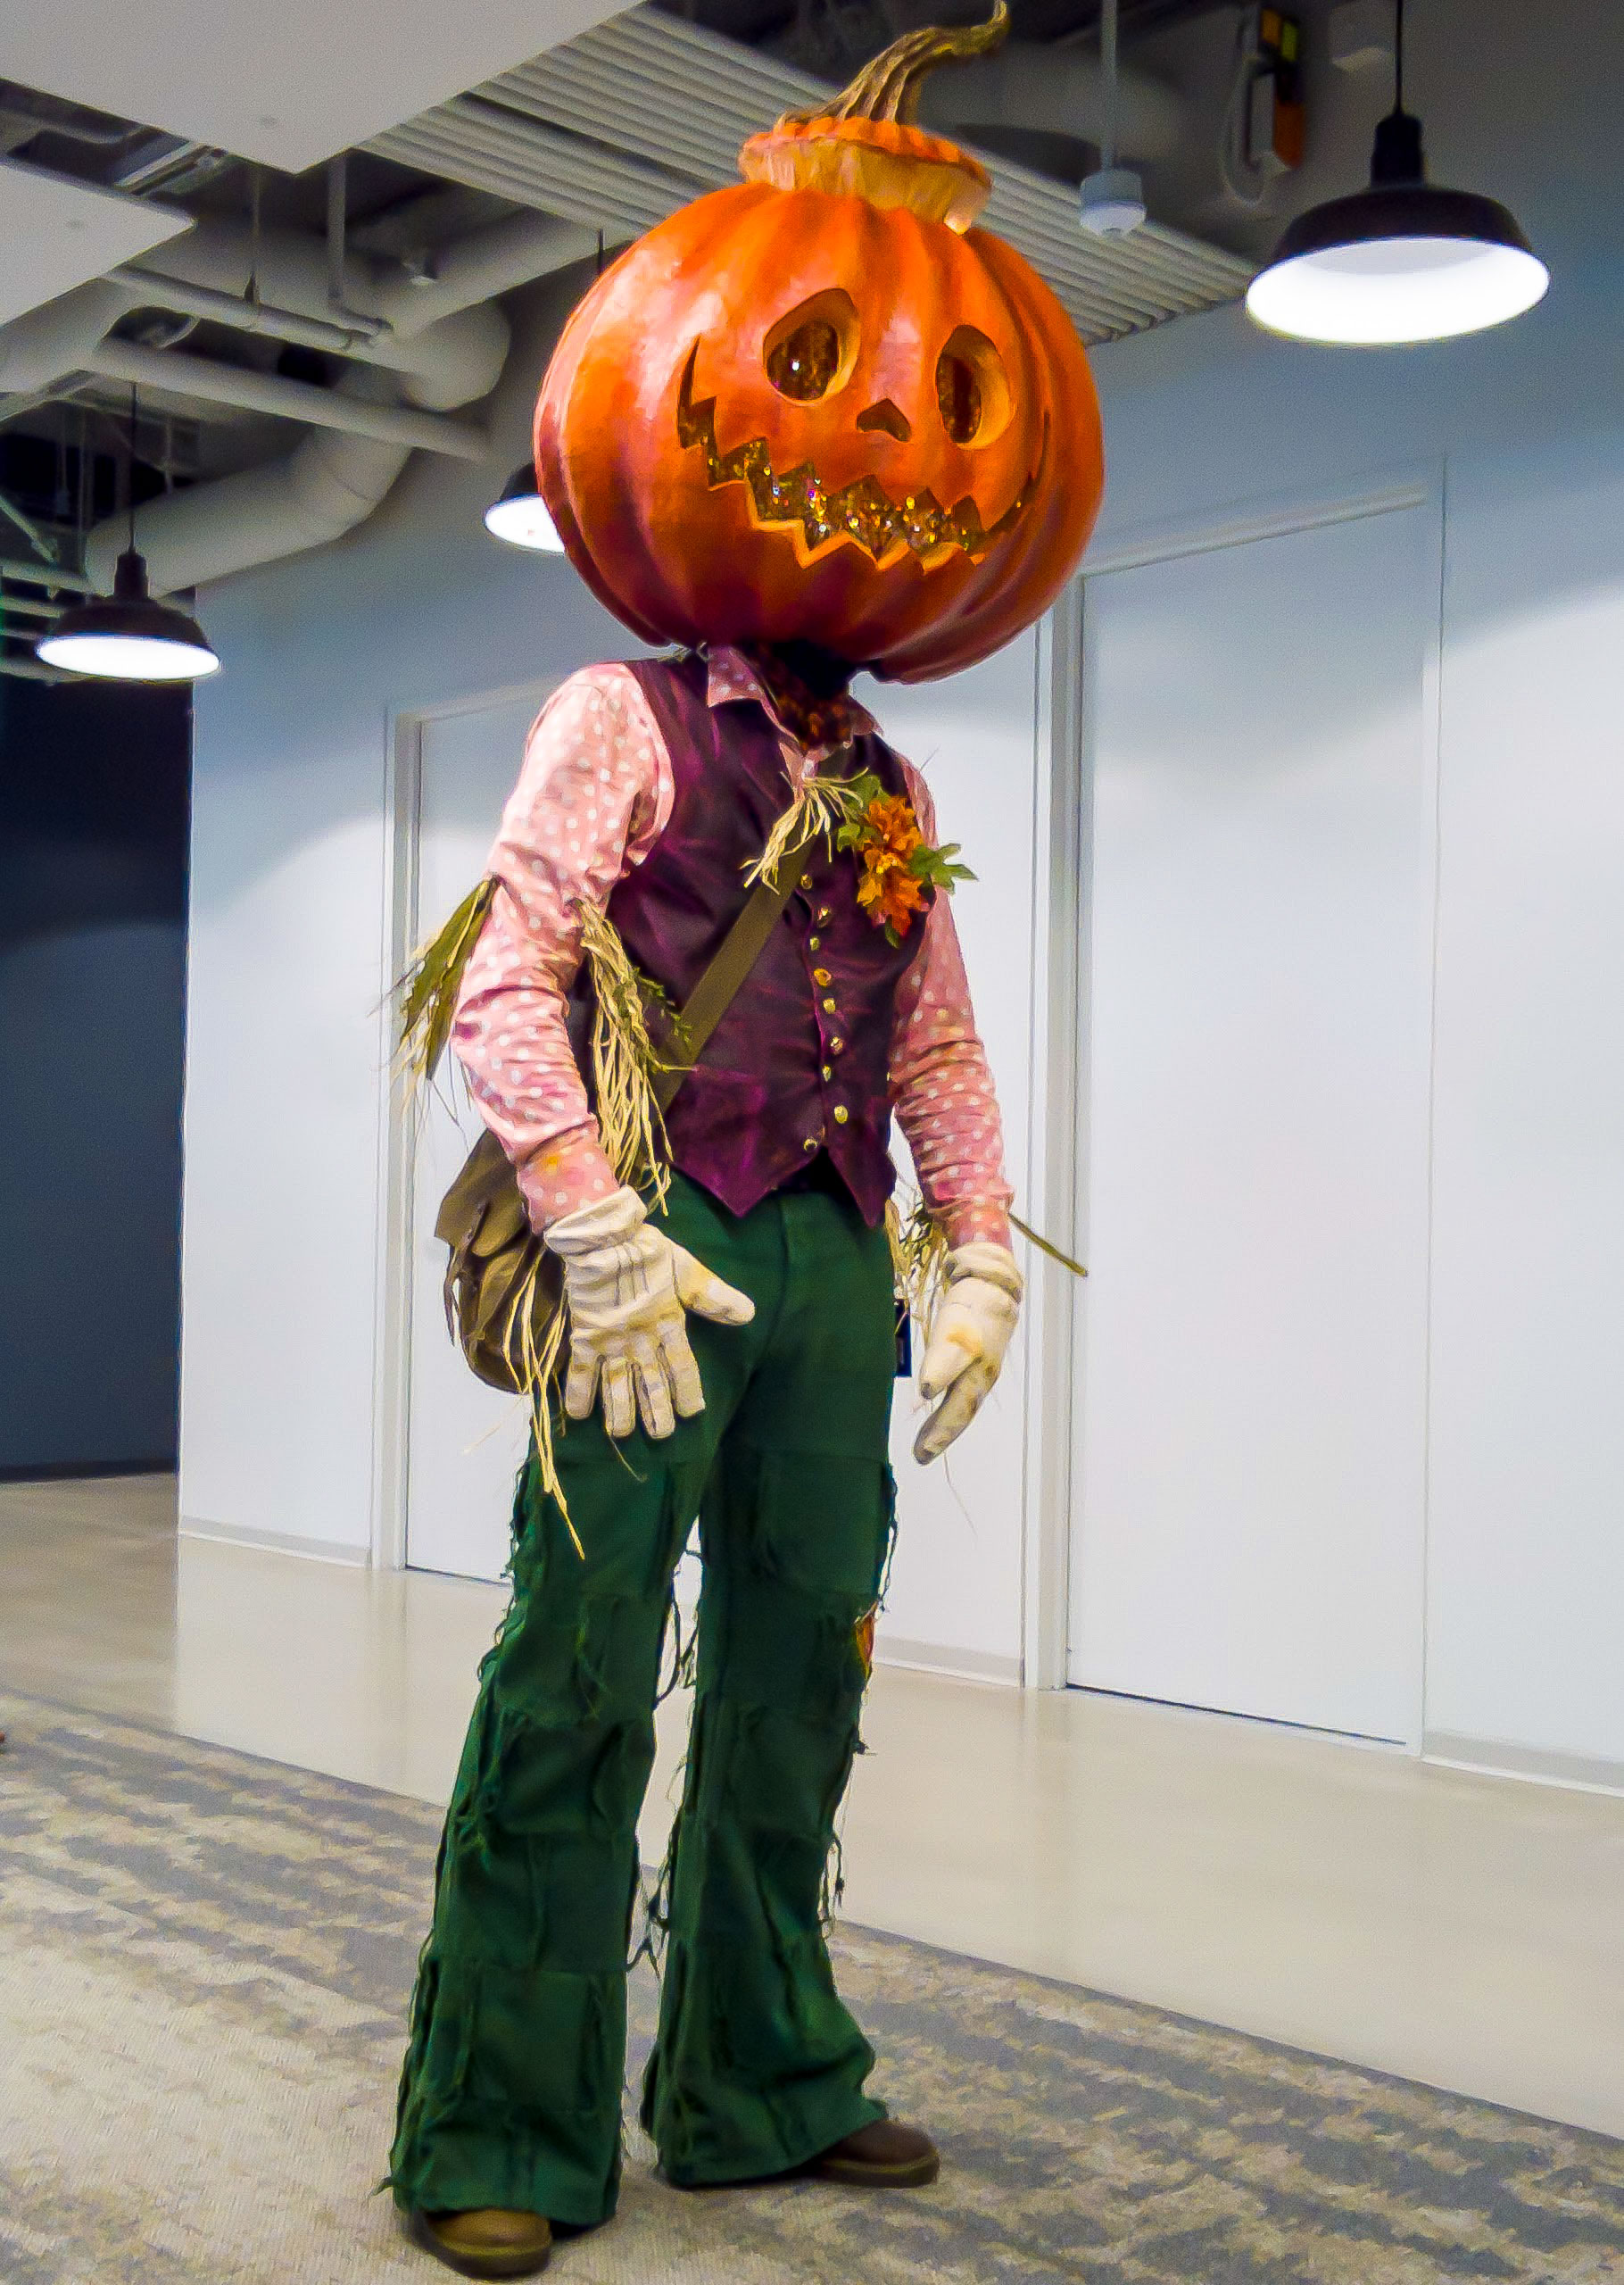 At the office Halloween party & Jack Pumpkinheadu201d Halloween Costume Build | Pizza By The Slice